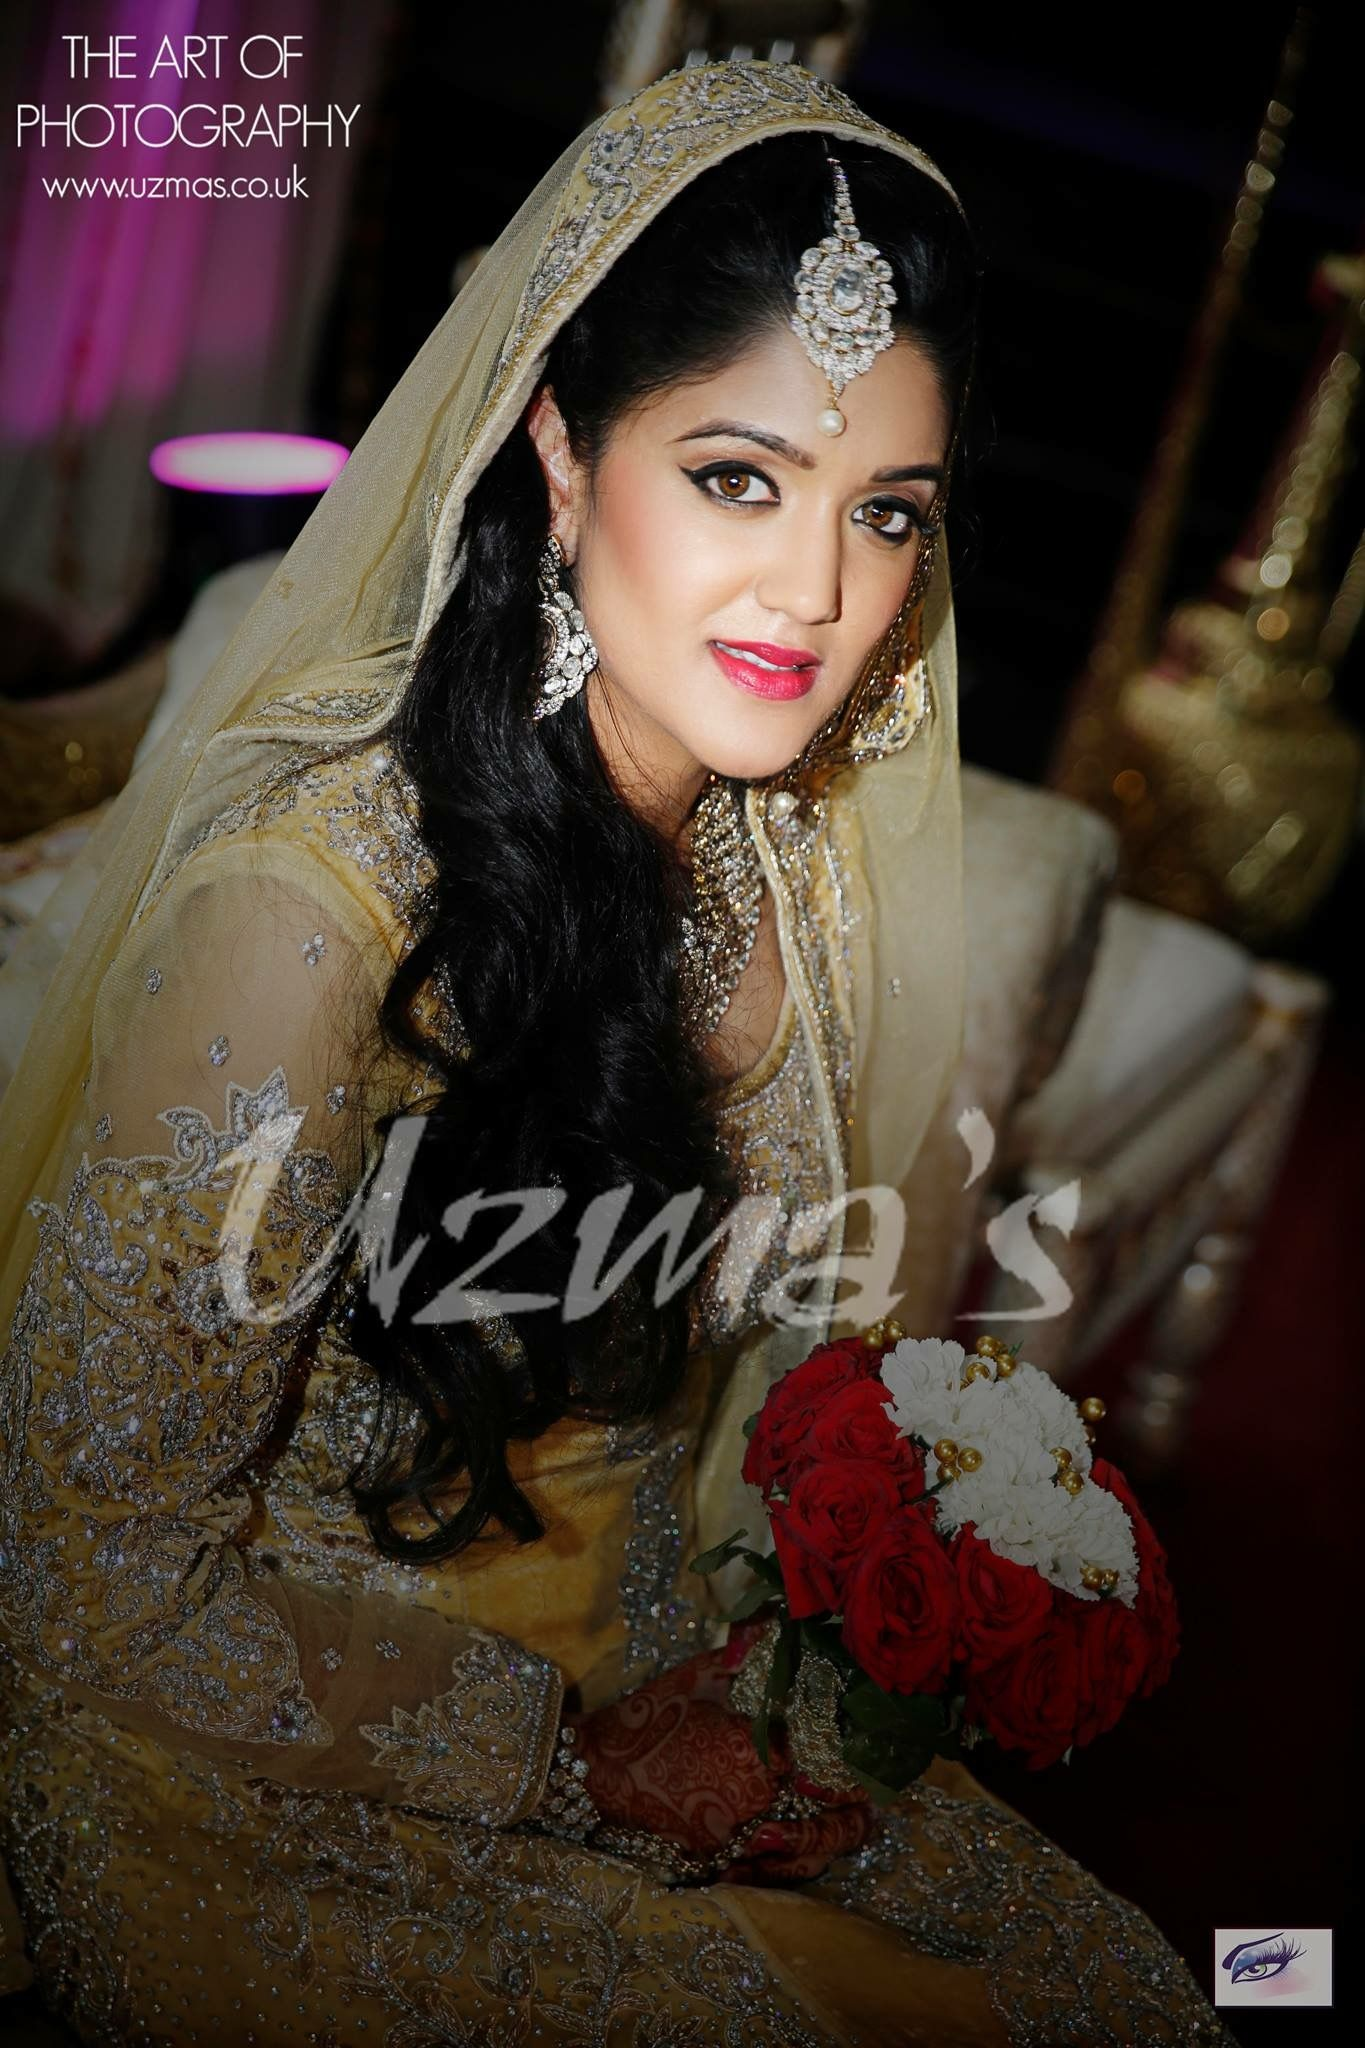 6981fba5524 Pin by Uzmas on Various pics related to Asian Wedding Photography ...